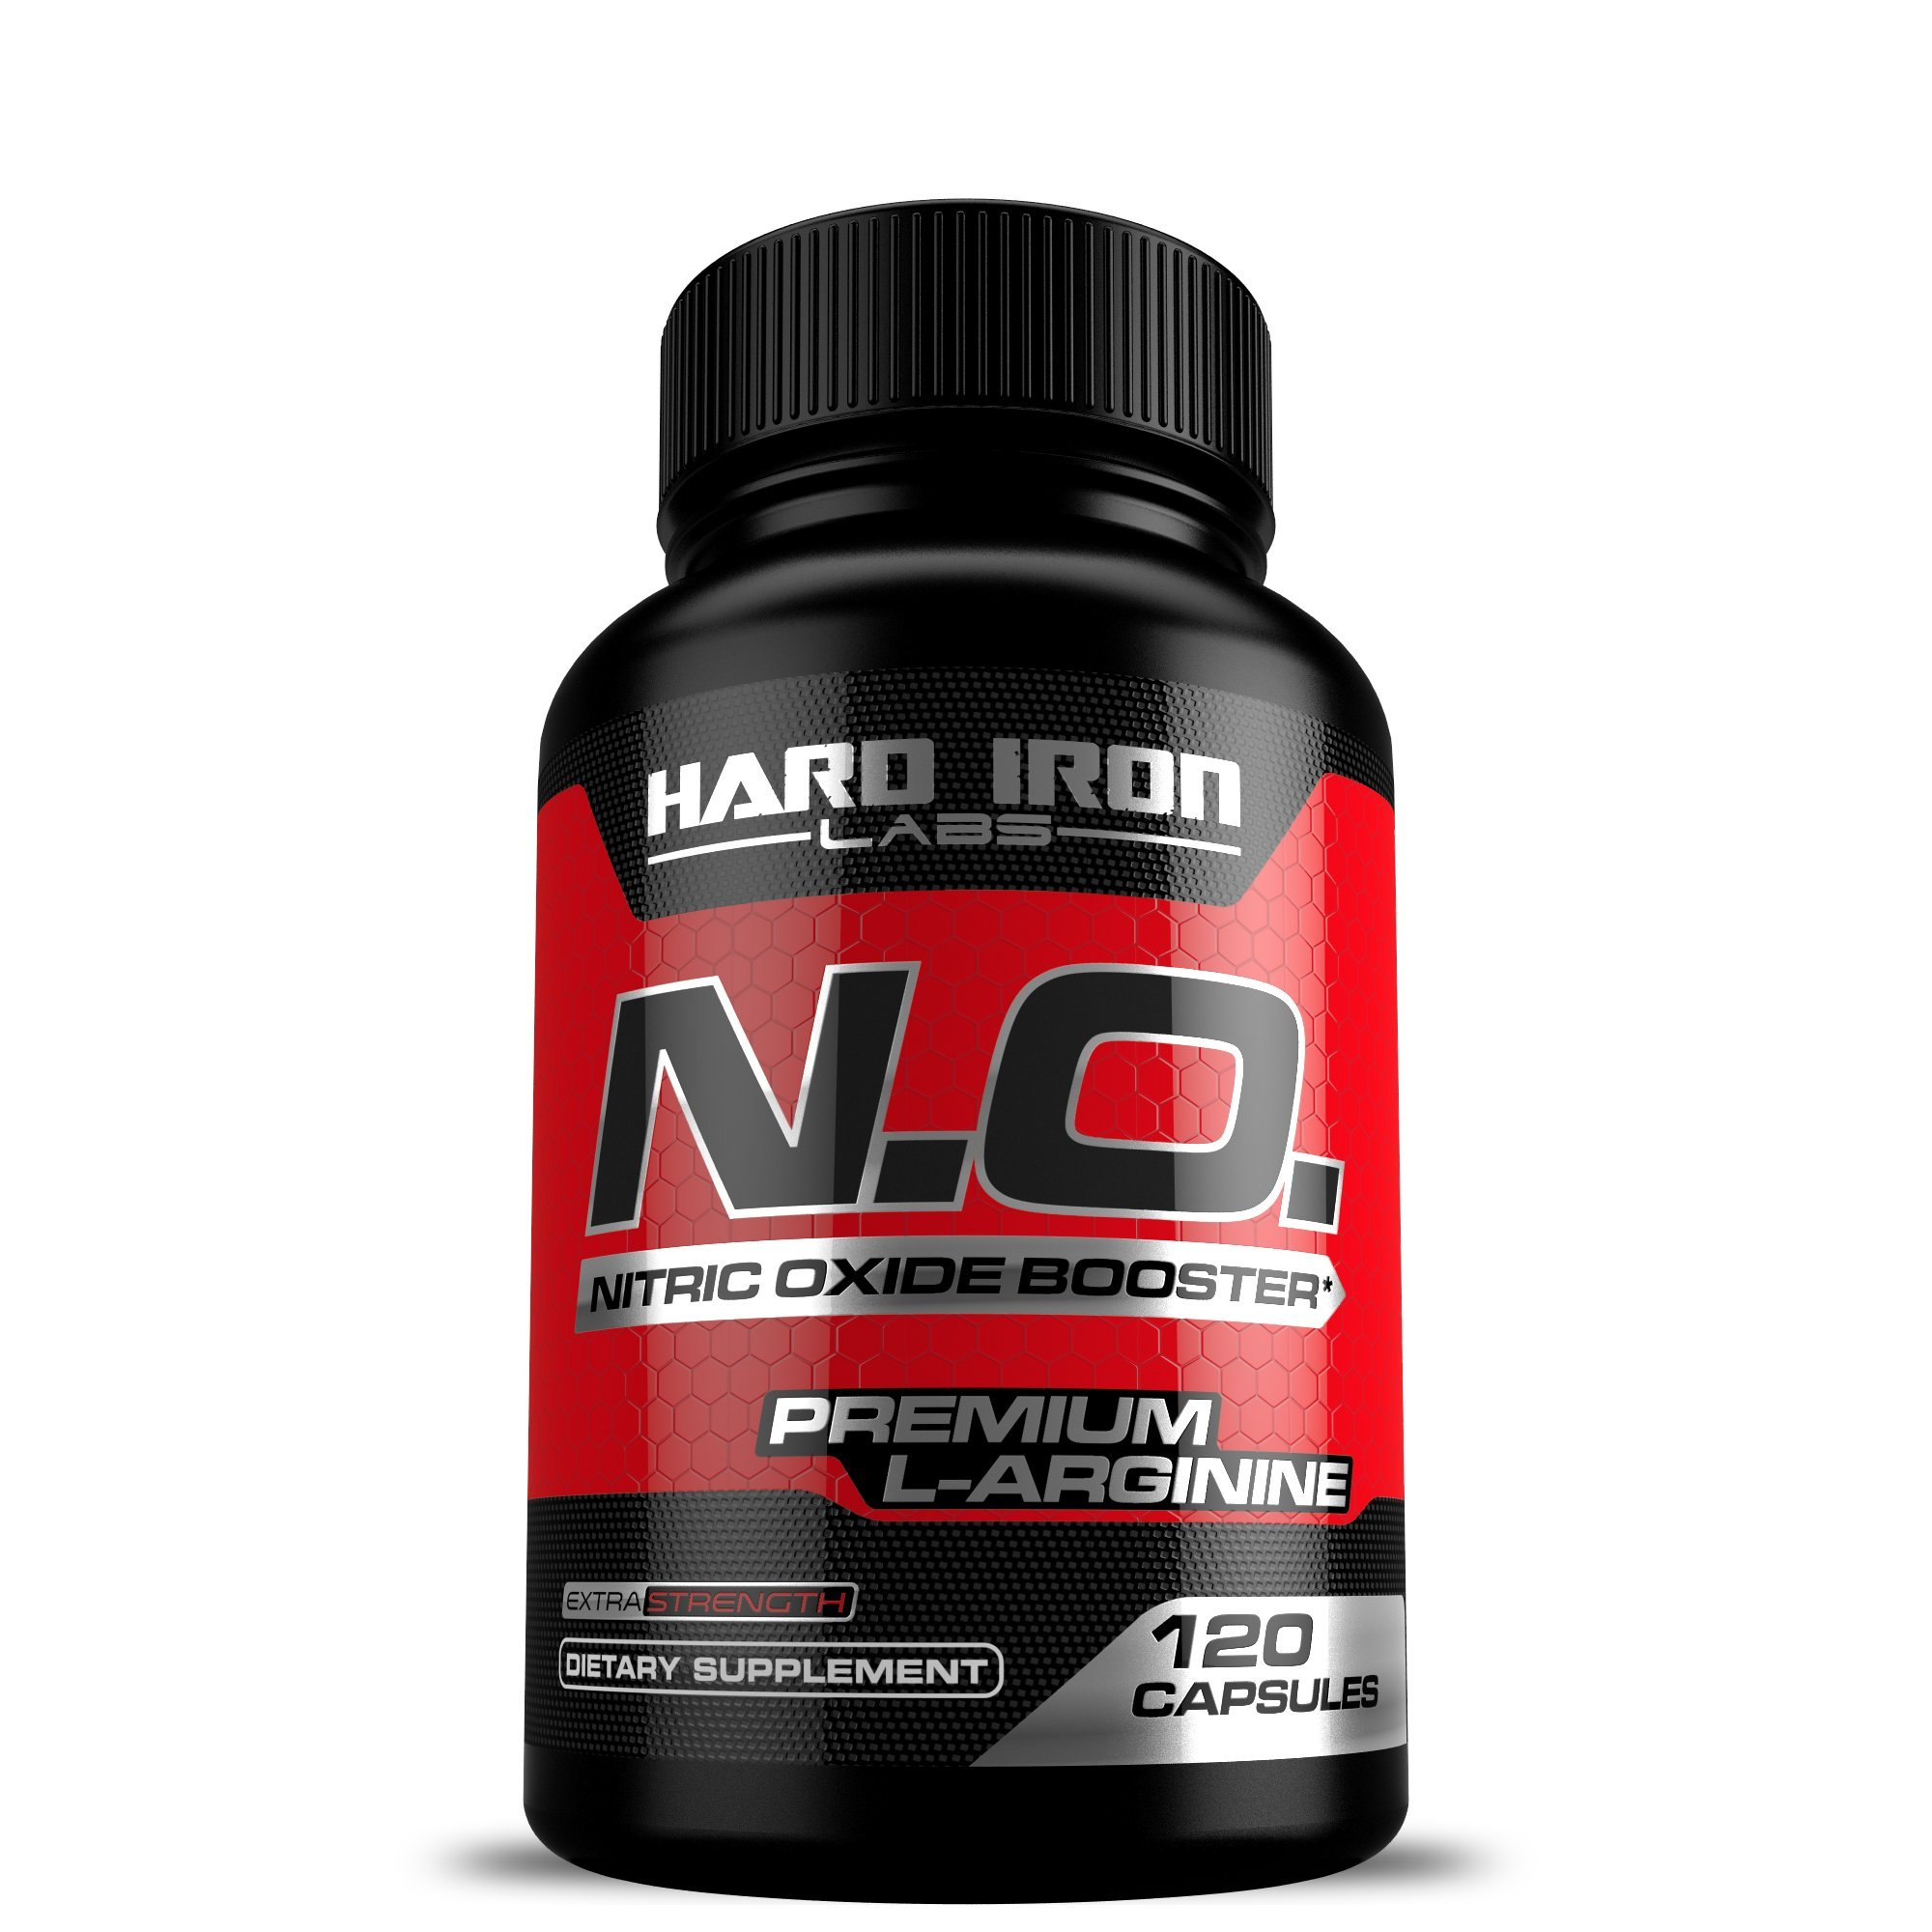 Nitric Oxide Supplement - Nitric Oxide Booster 1300mg - L Arginine & L Citrulline for Muscle Building, Vascularity, Pumps, Energy, Heart Health - Increase Blood Flow NO Booster Pre - 120 Capsules by Hard Iron Labs